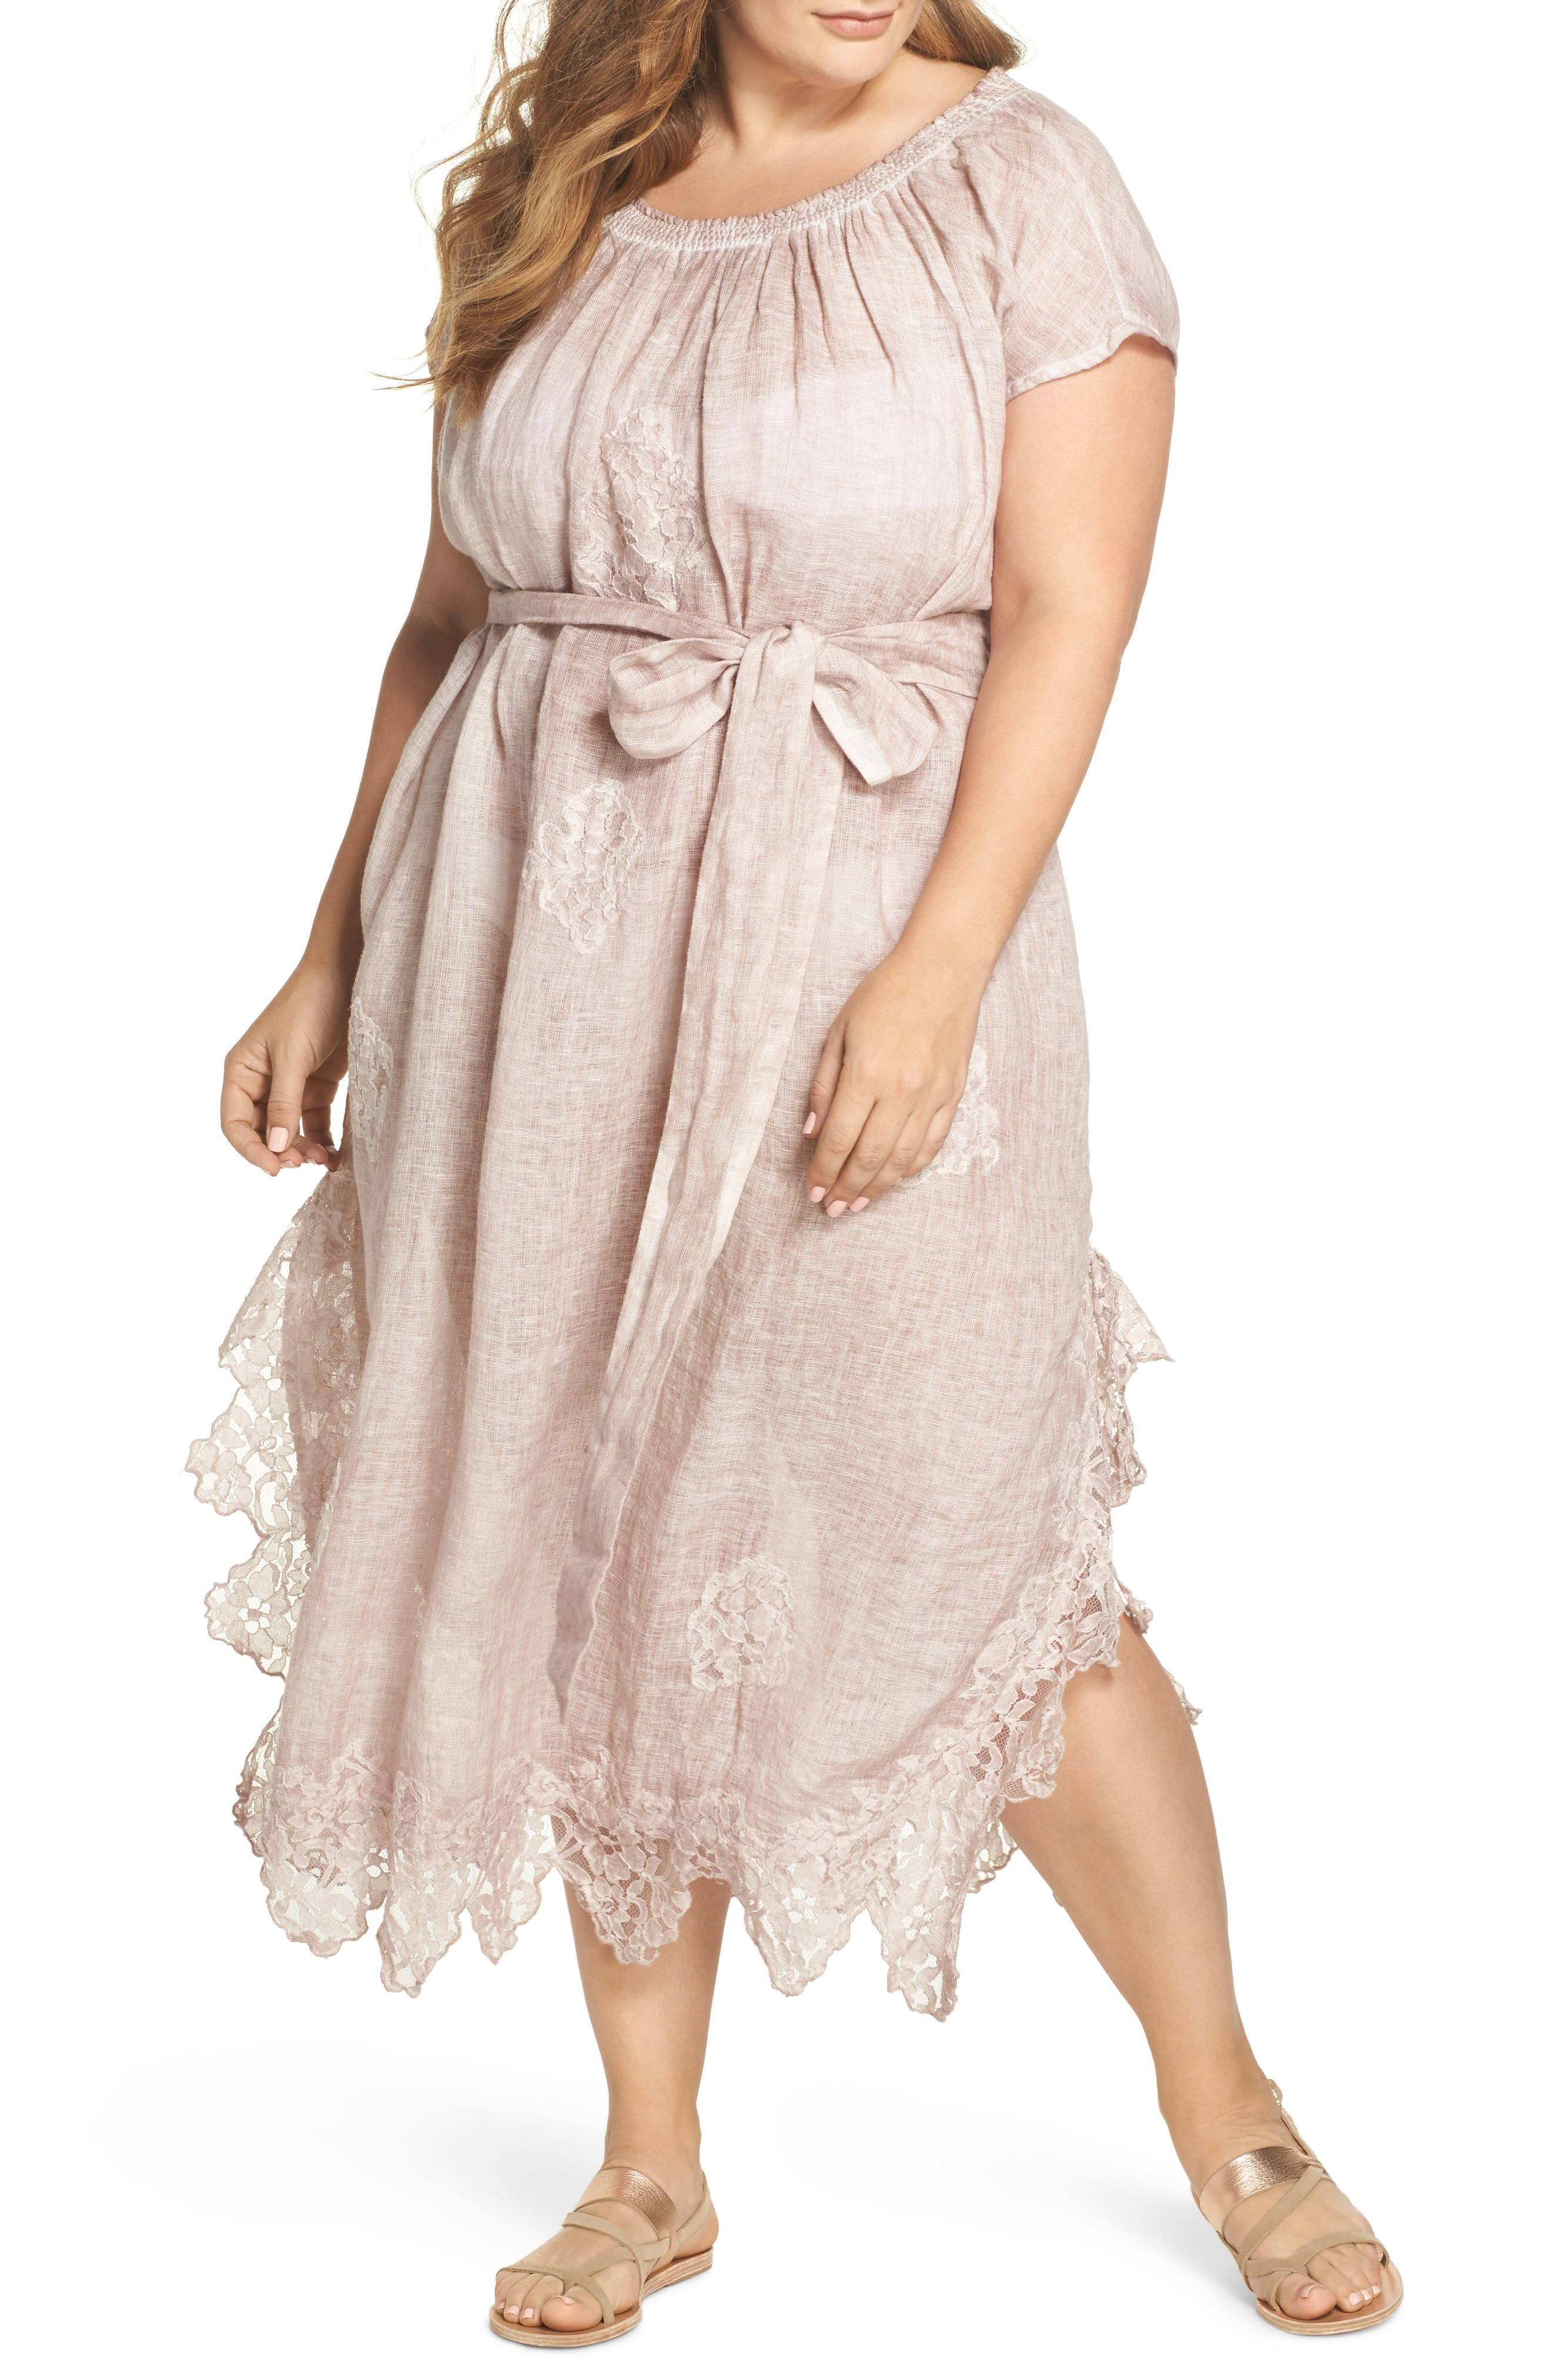 Muche et Muchette Daisy Linen Cover-Up Dress (Plus Size)